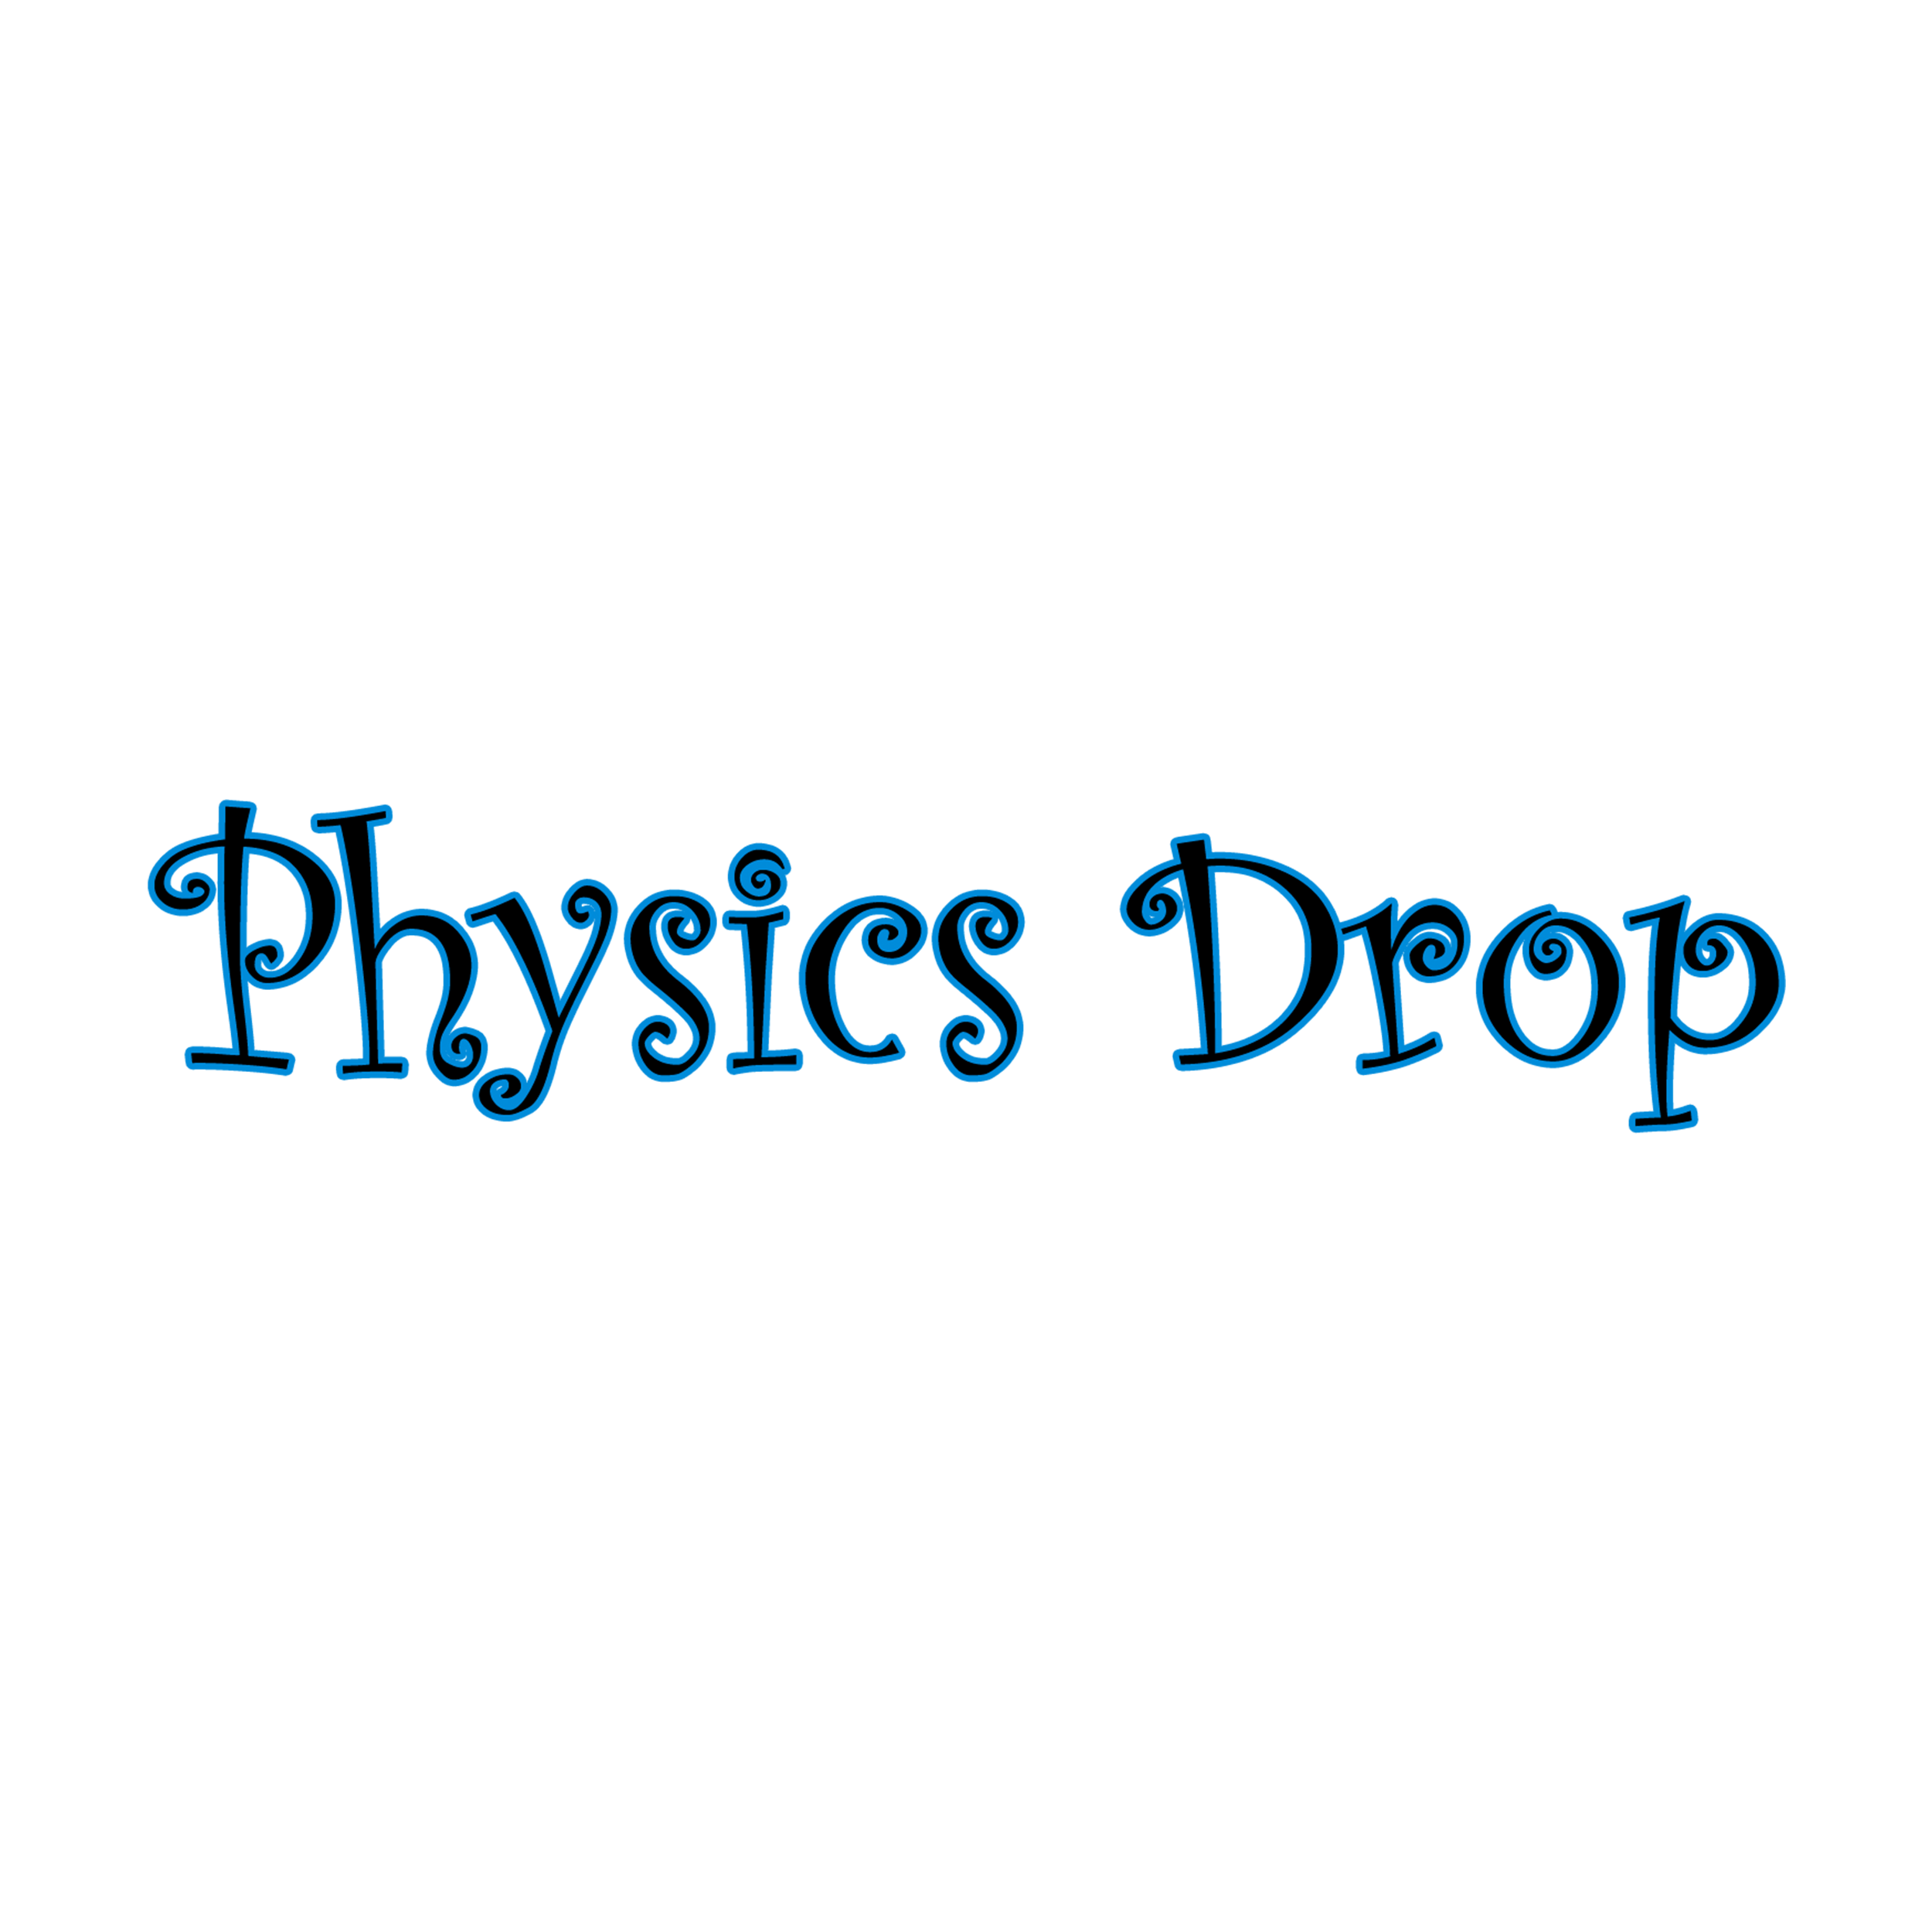 Physics Drop logo